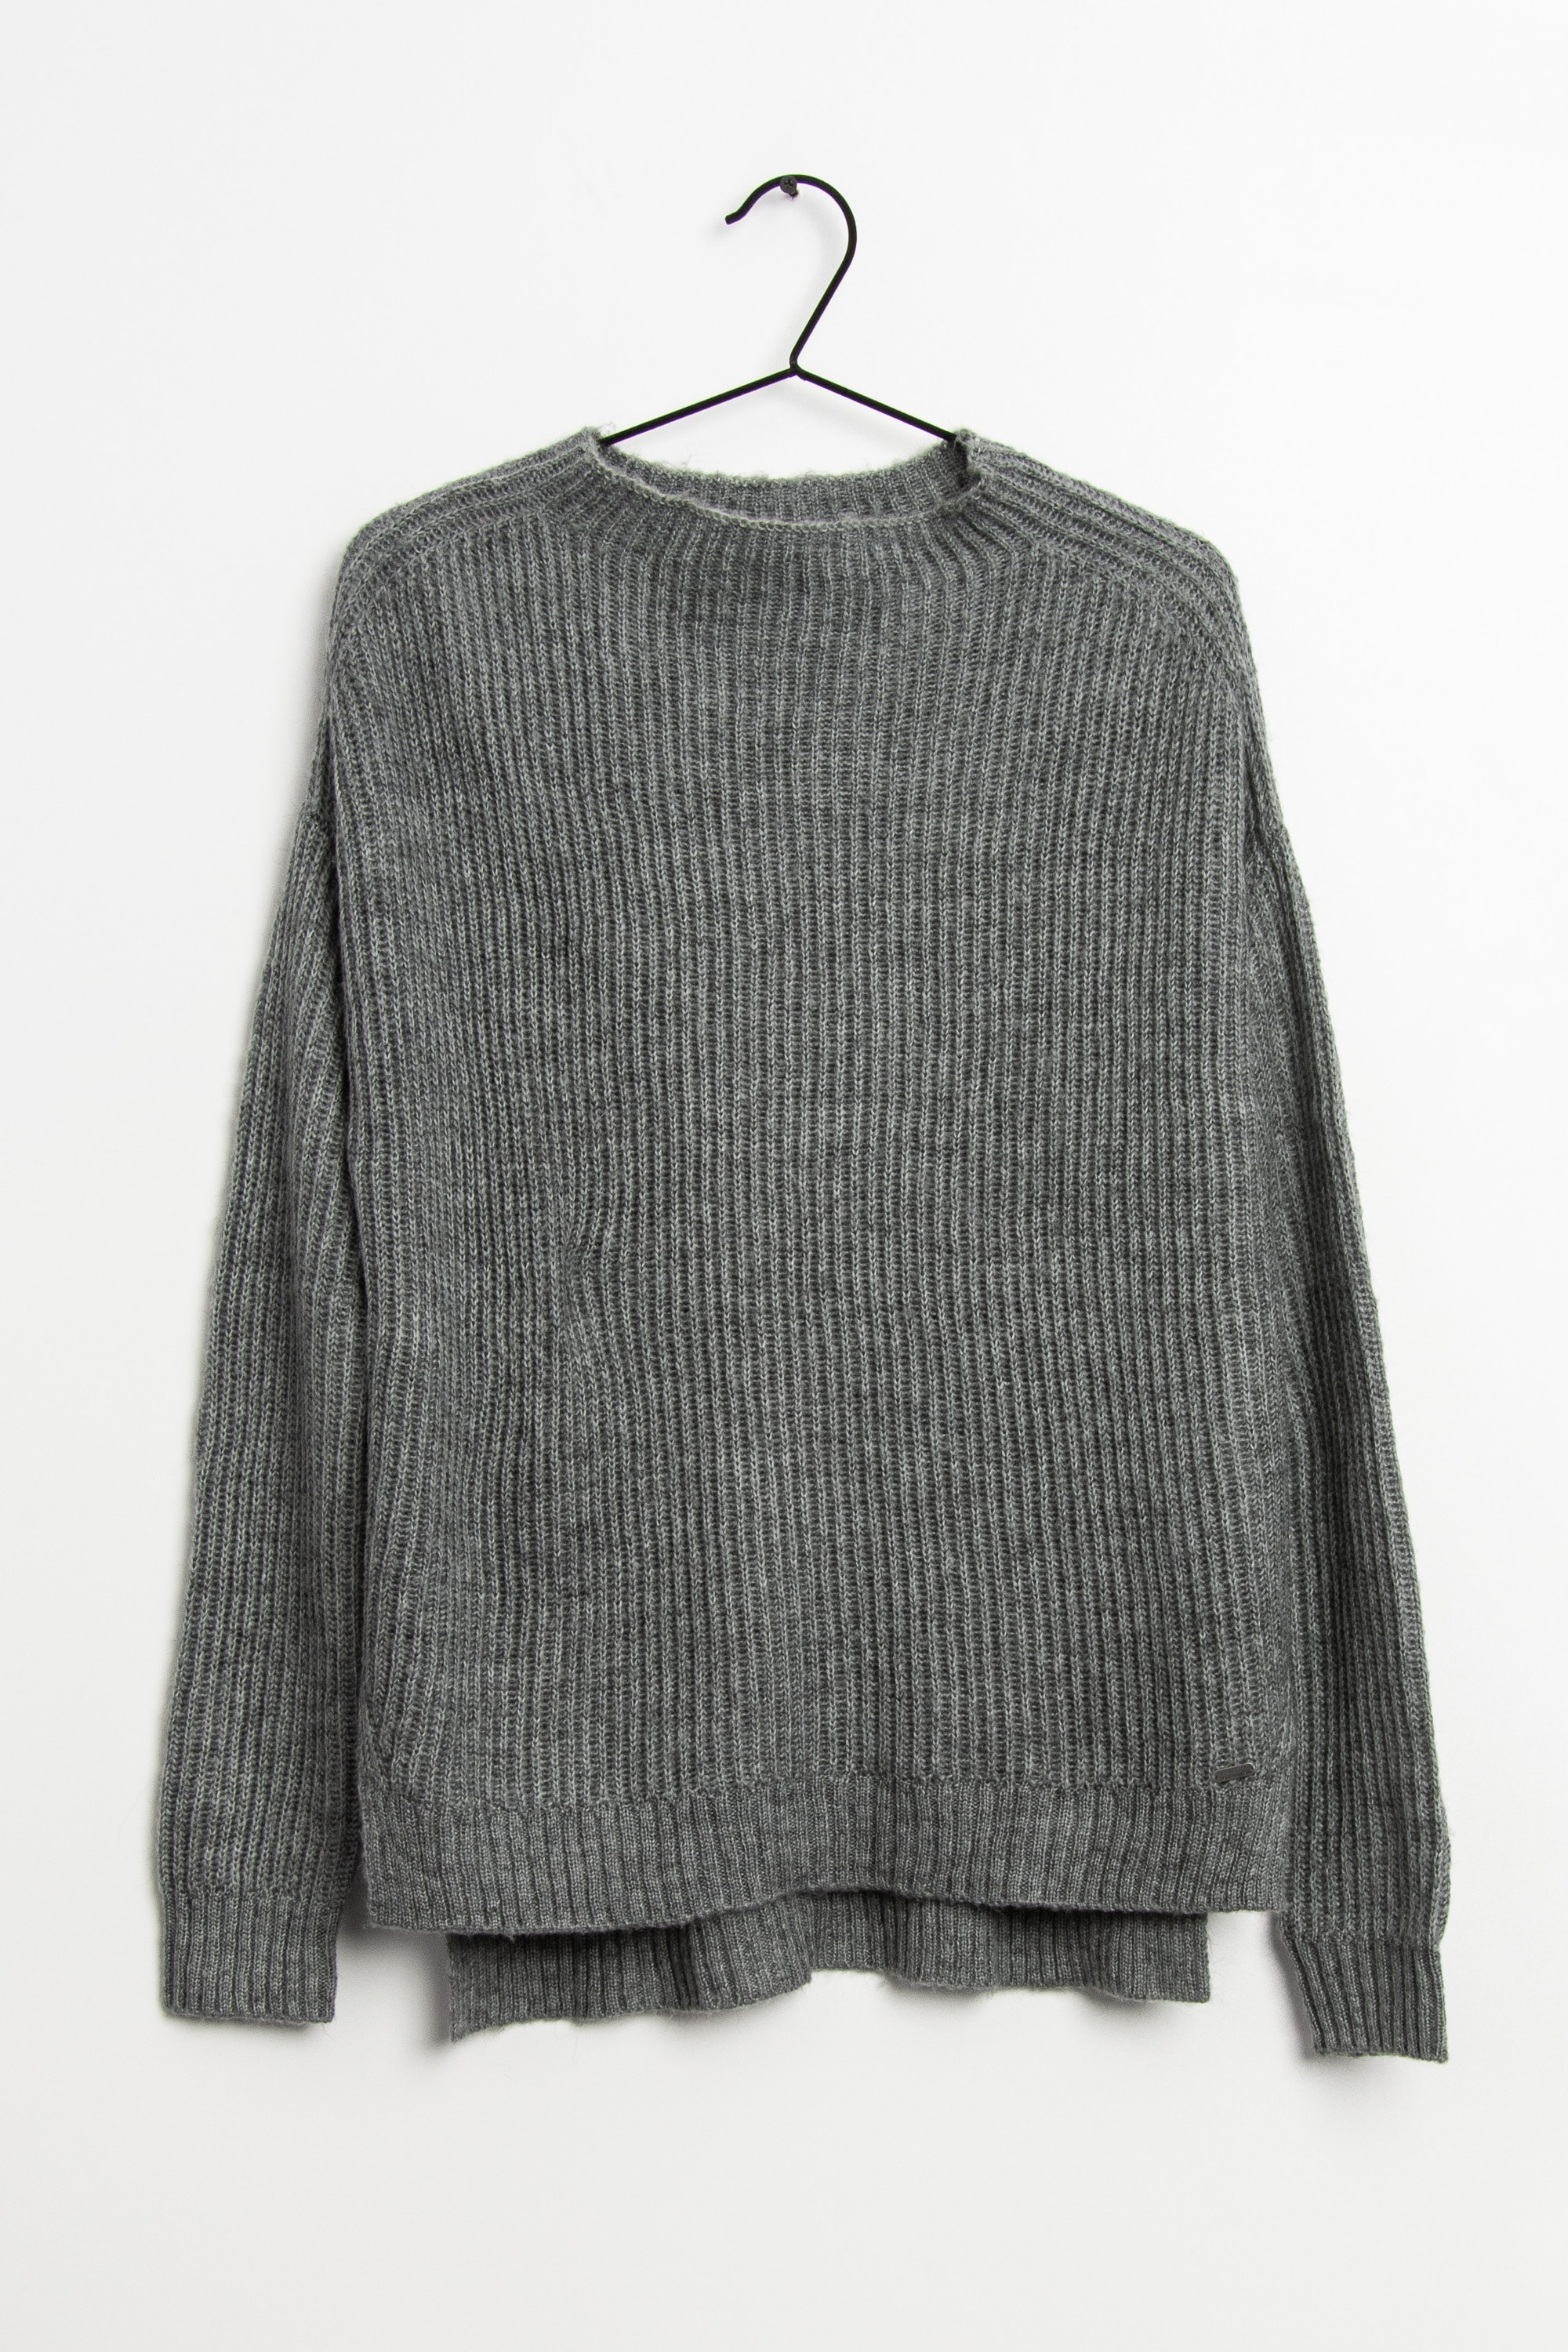 TOM TAILOR Strickpullover Grau Gr.M